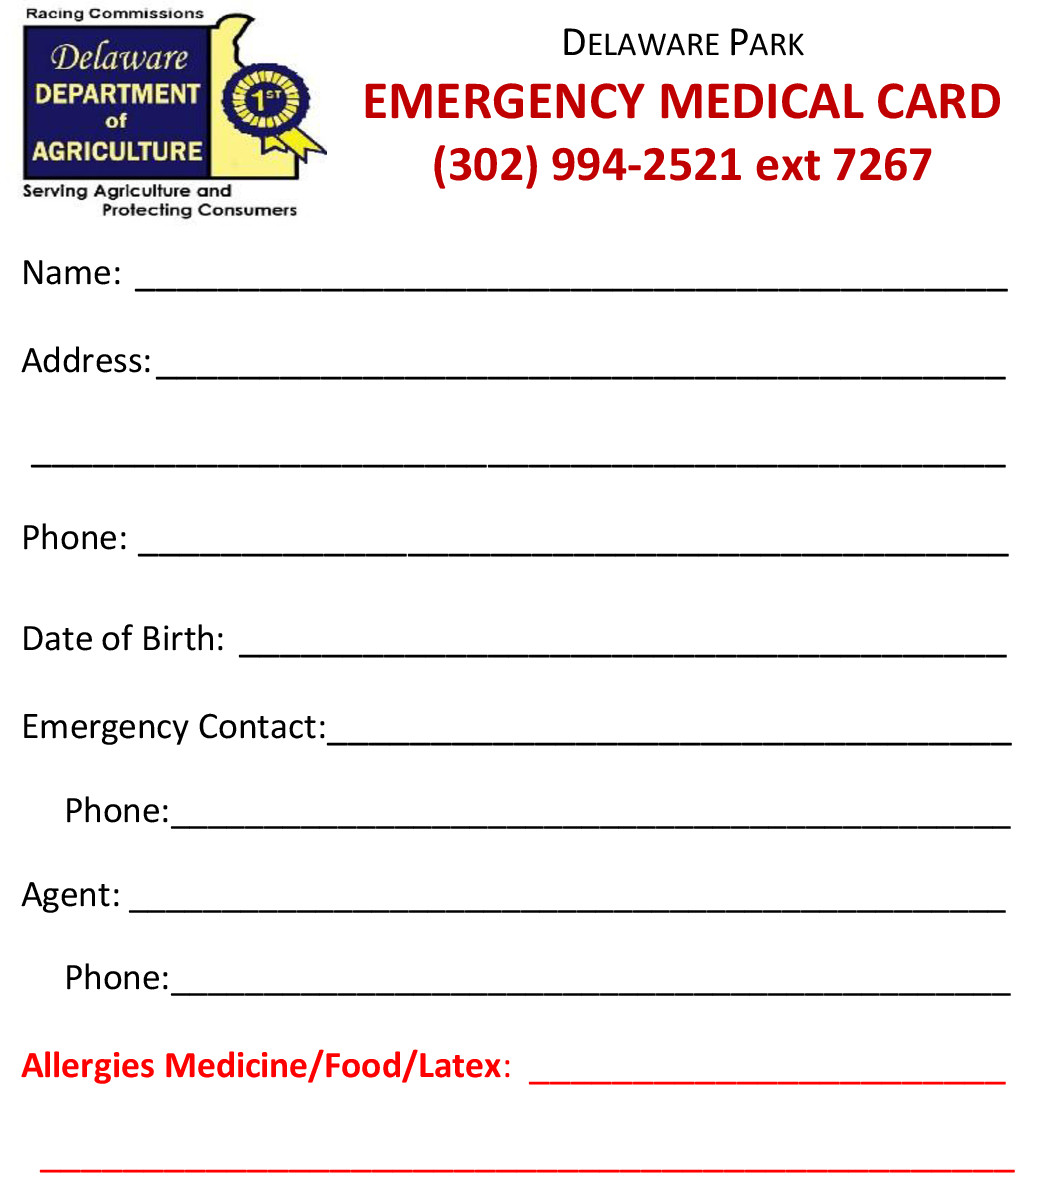 Emergency Medical Card Template Delaware Jockeys association